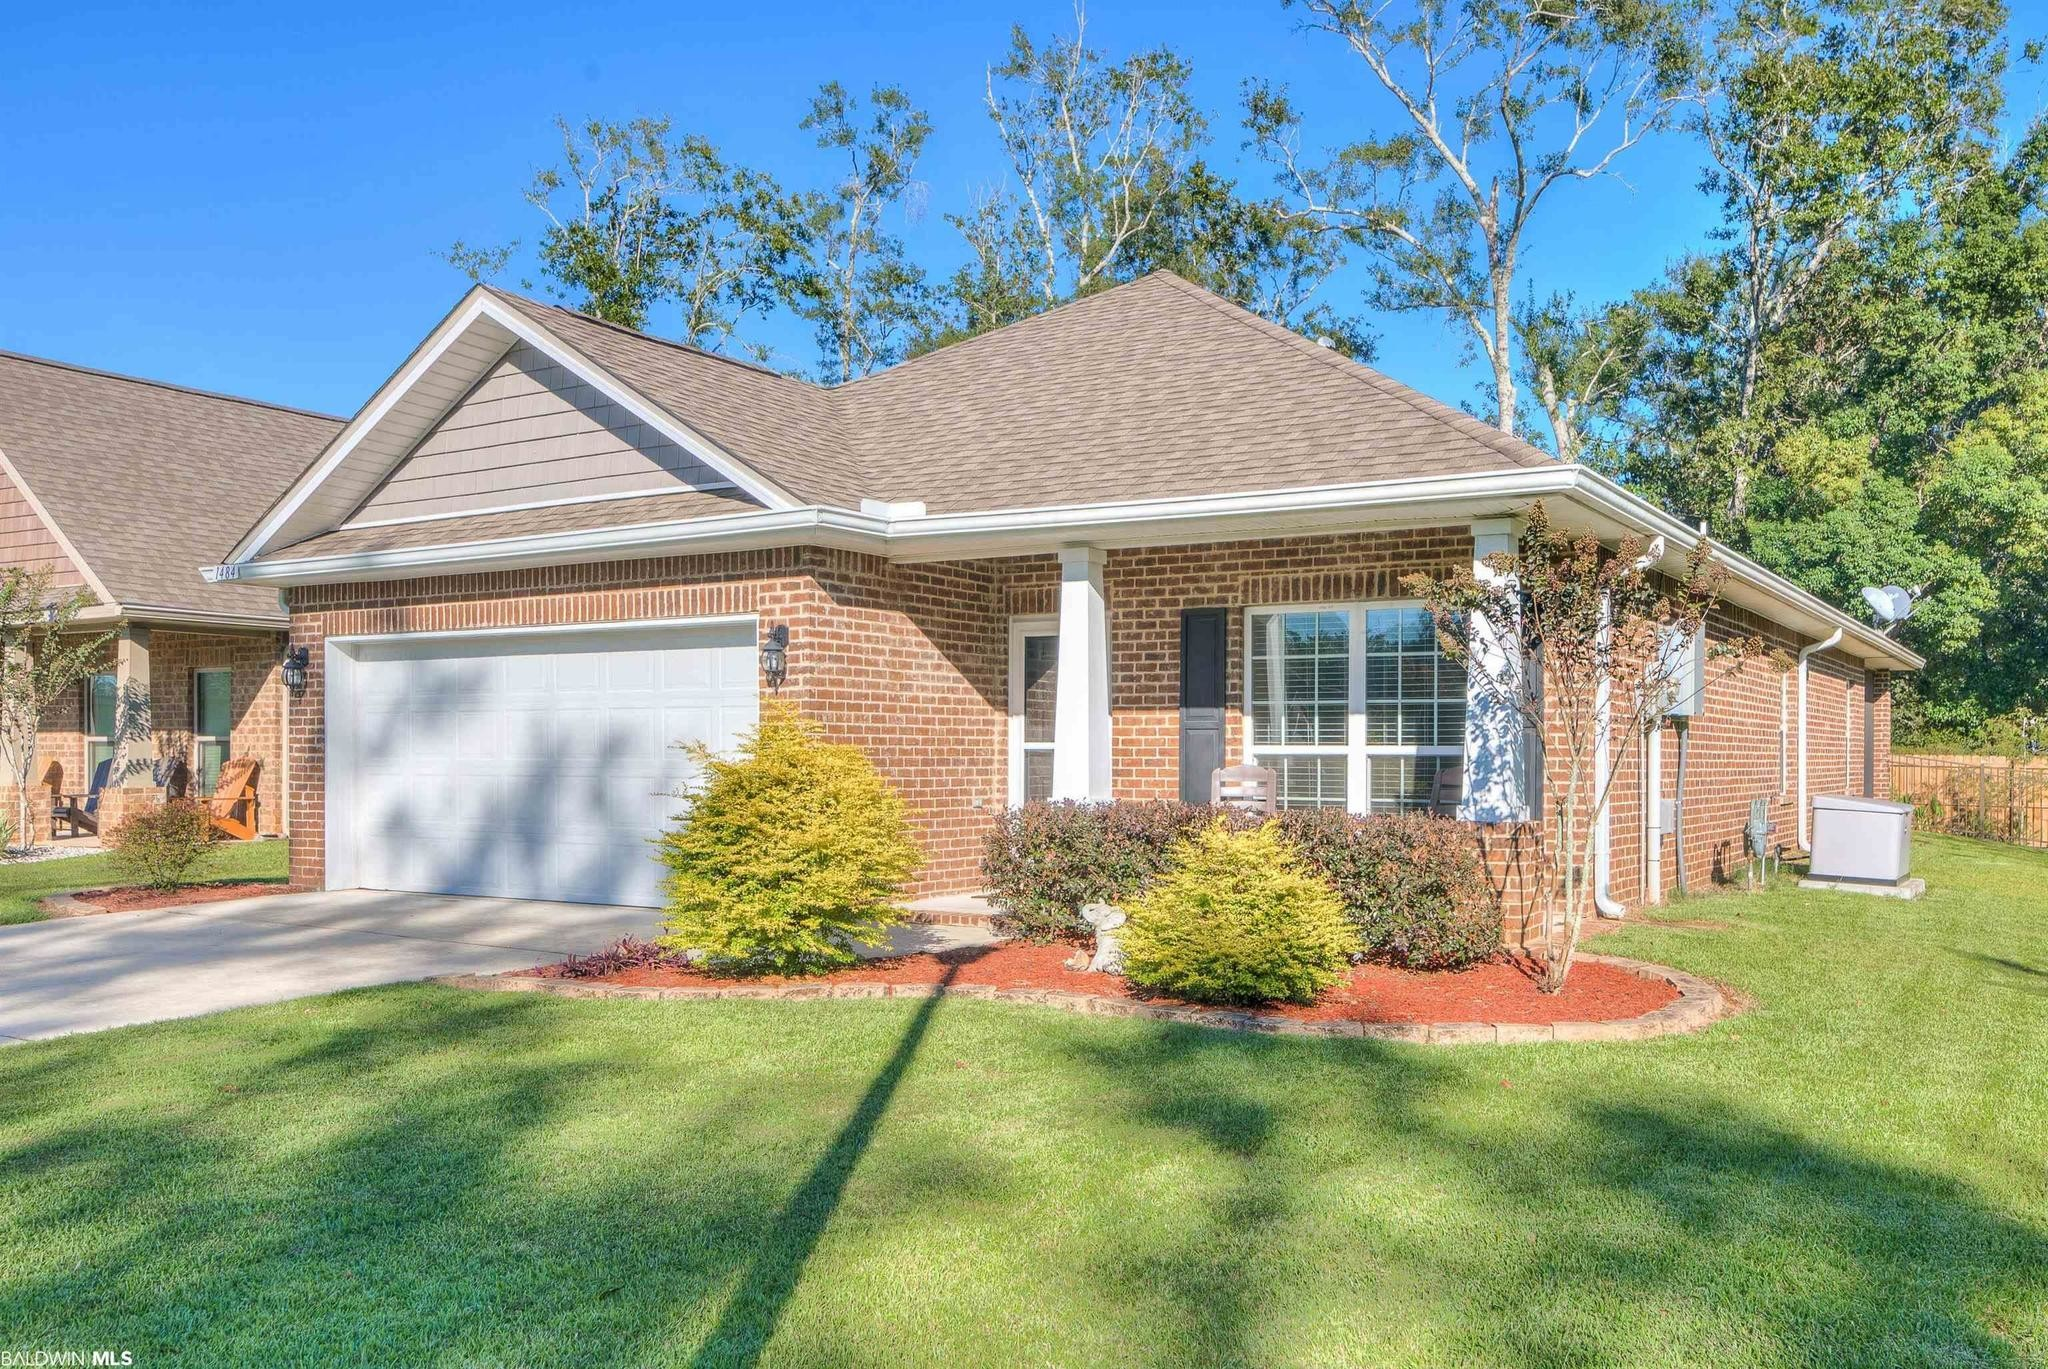 3-Bedroom House In Cypress Gates